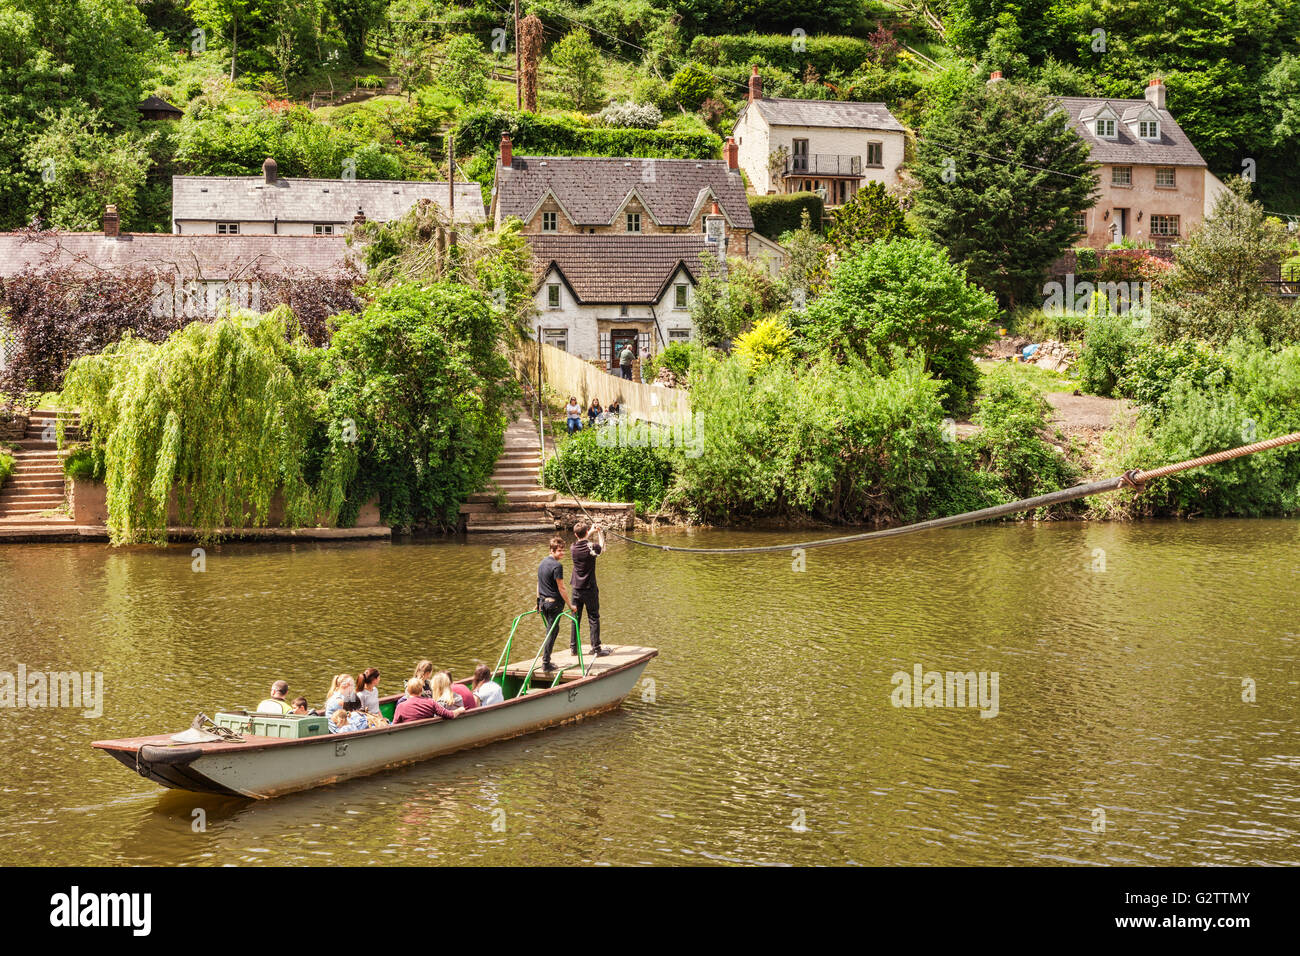 People crossing the River Wye on the ancient Hand Ferry at Symonds Yat, Gloucestershire, England, UK - Stock Image